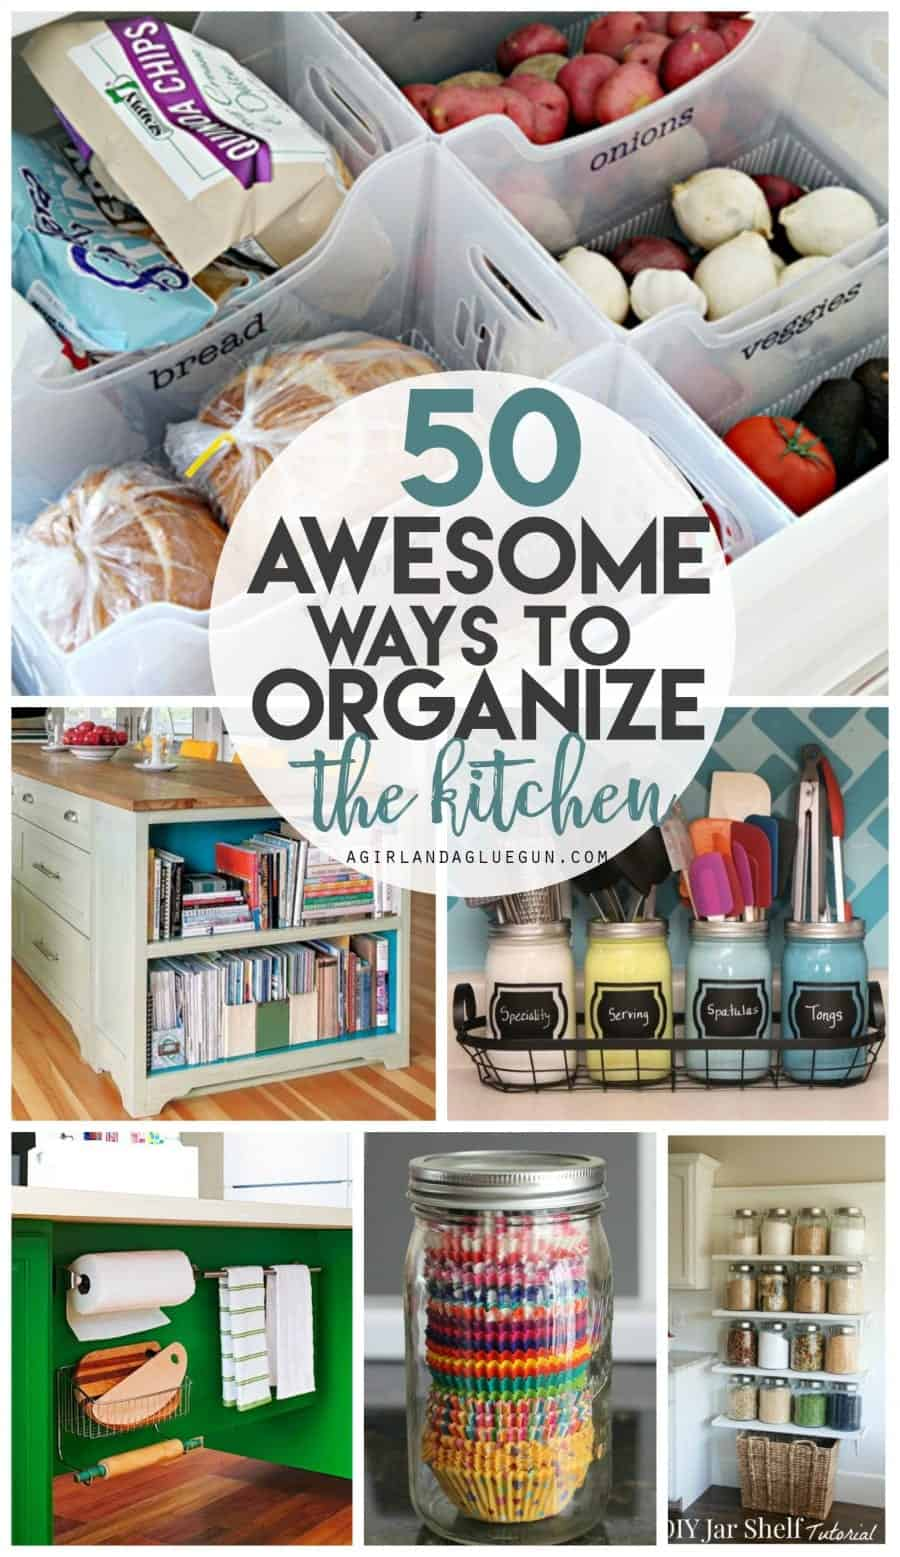 50 awesome ways to organize the kitchen--awesome hacks